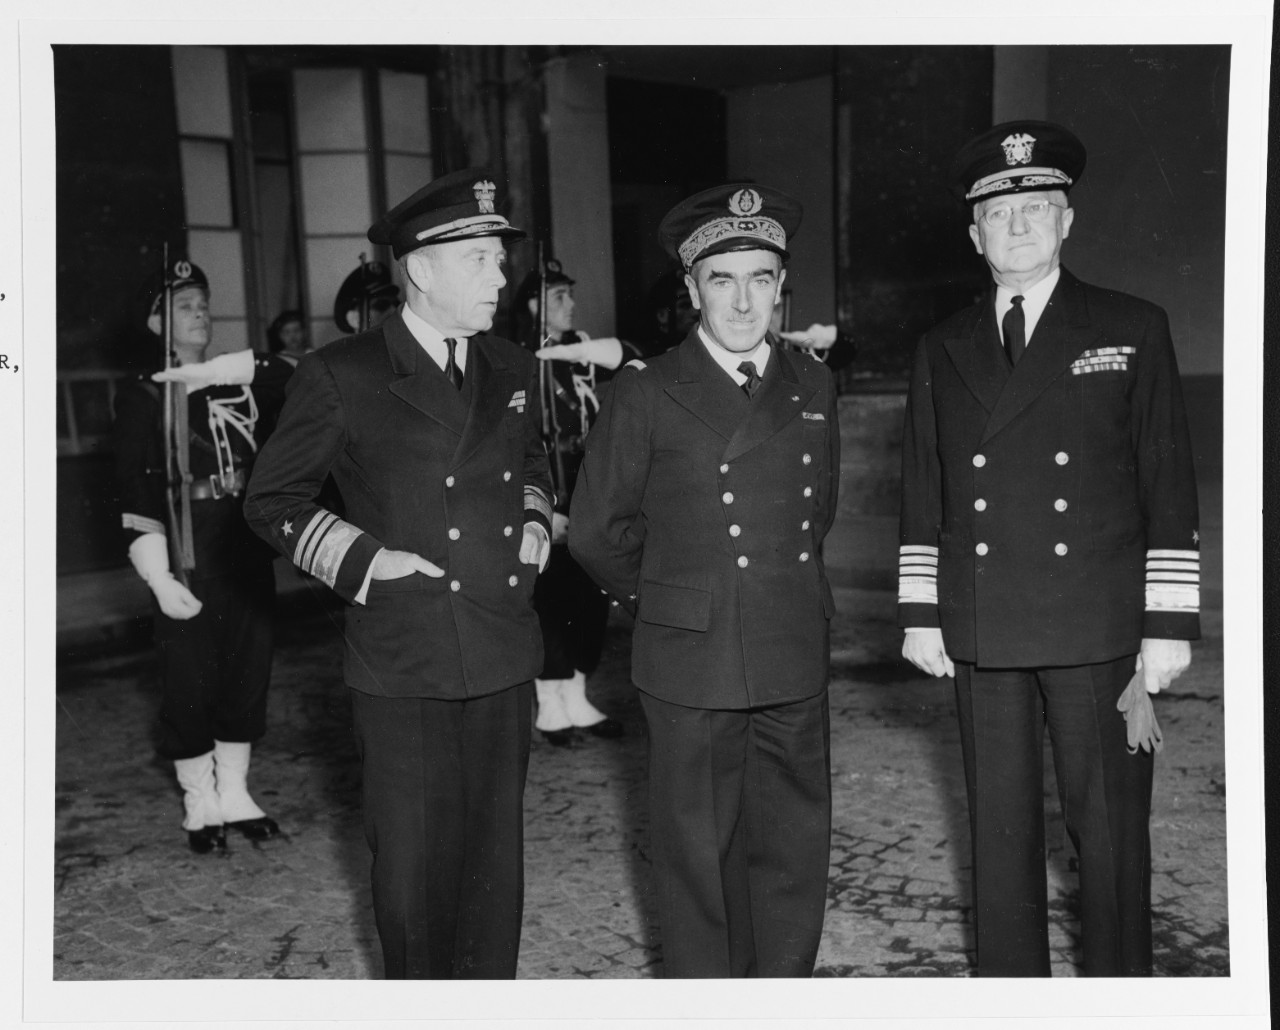 Vice Admiral Alan G. Kirk, USN, Commander, U.S. Naval Forces, France; Vice Admiral A.G. Lemonnier, Chief of staff, French Navy; and Admiral Harold R. Stark, USN, Commander U.S. Naval Forces, Europe.